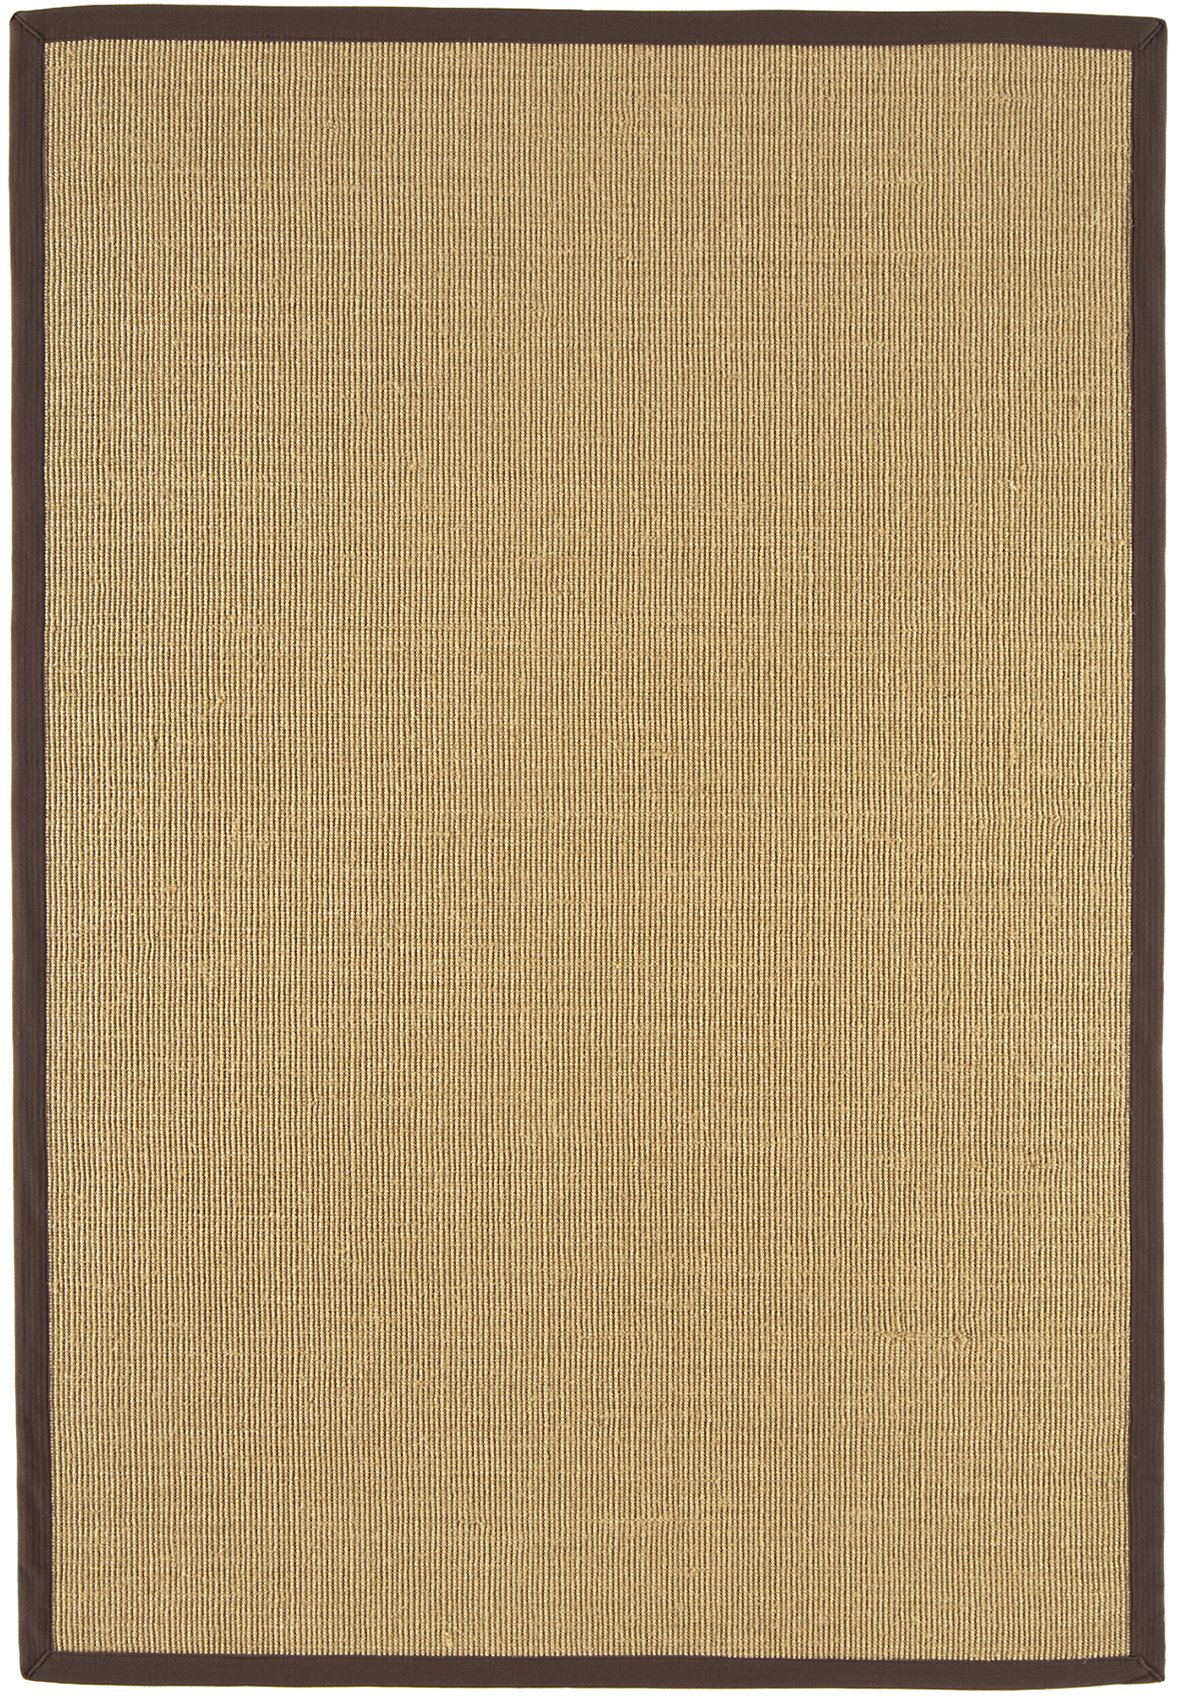 Sisal Rug Chocolate Linen